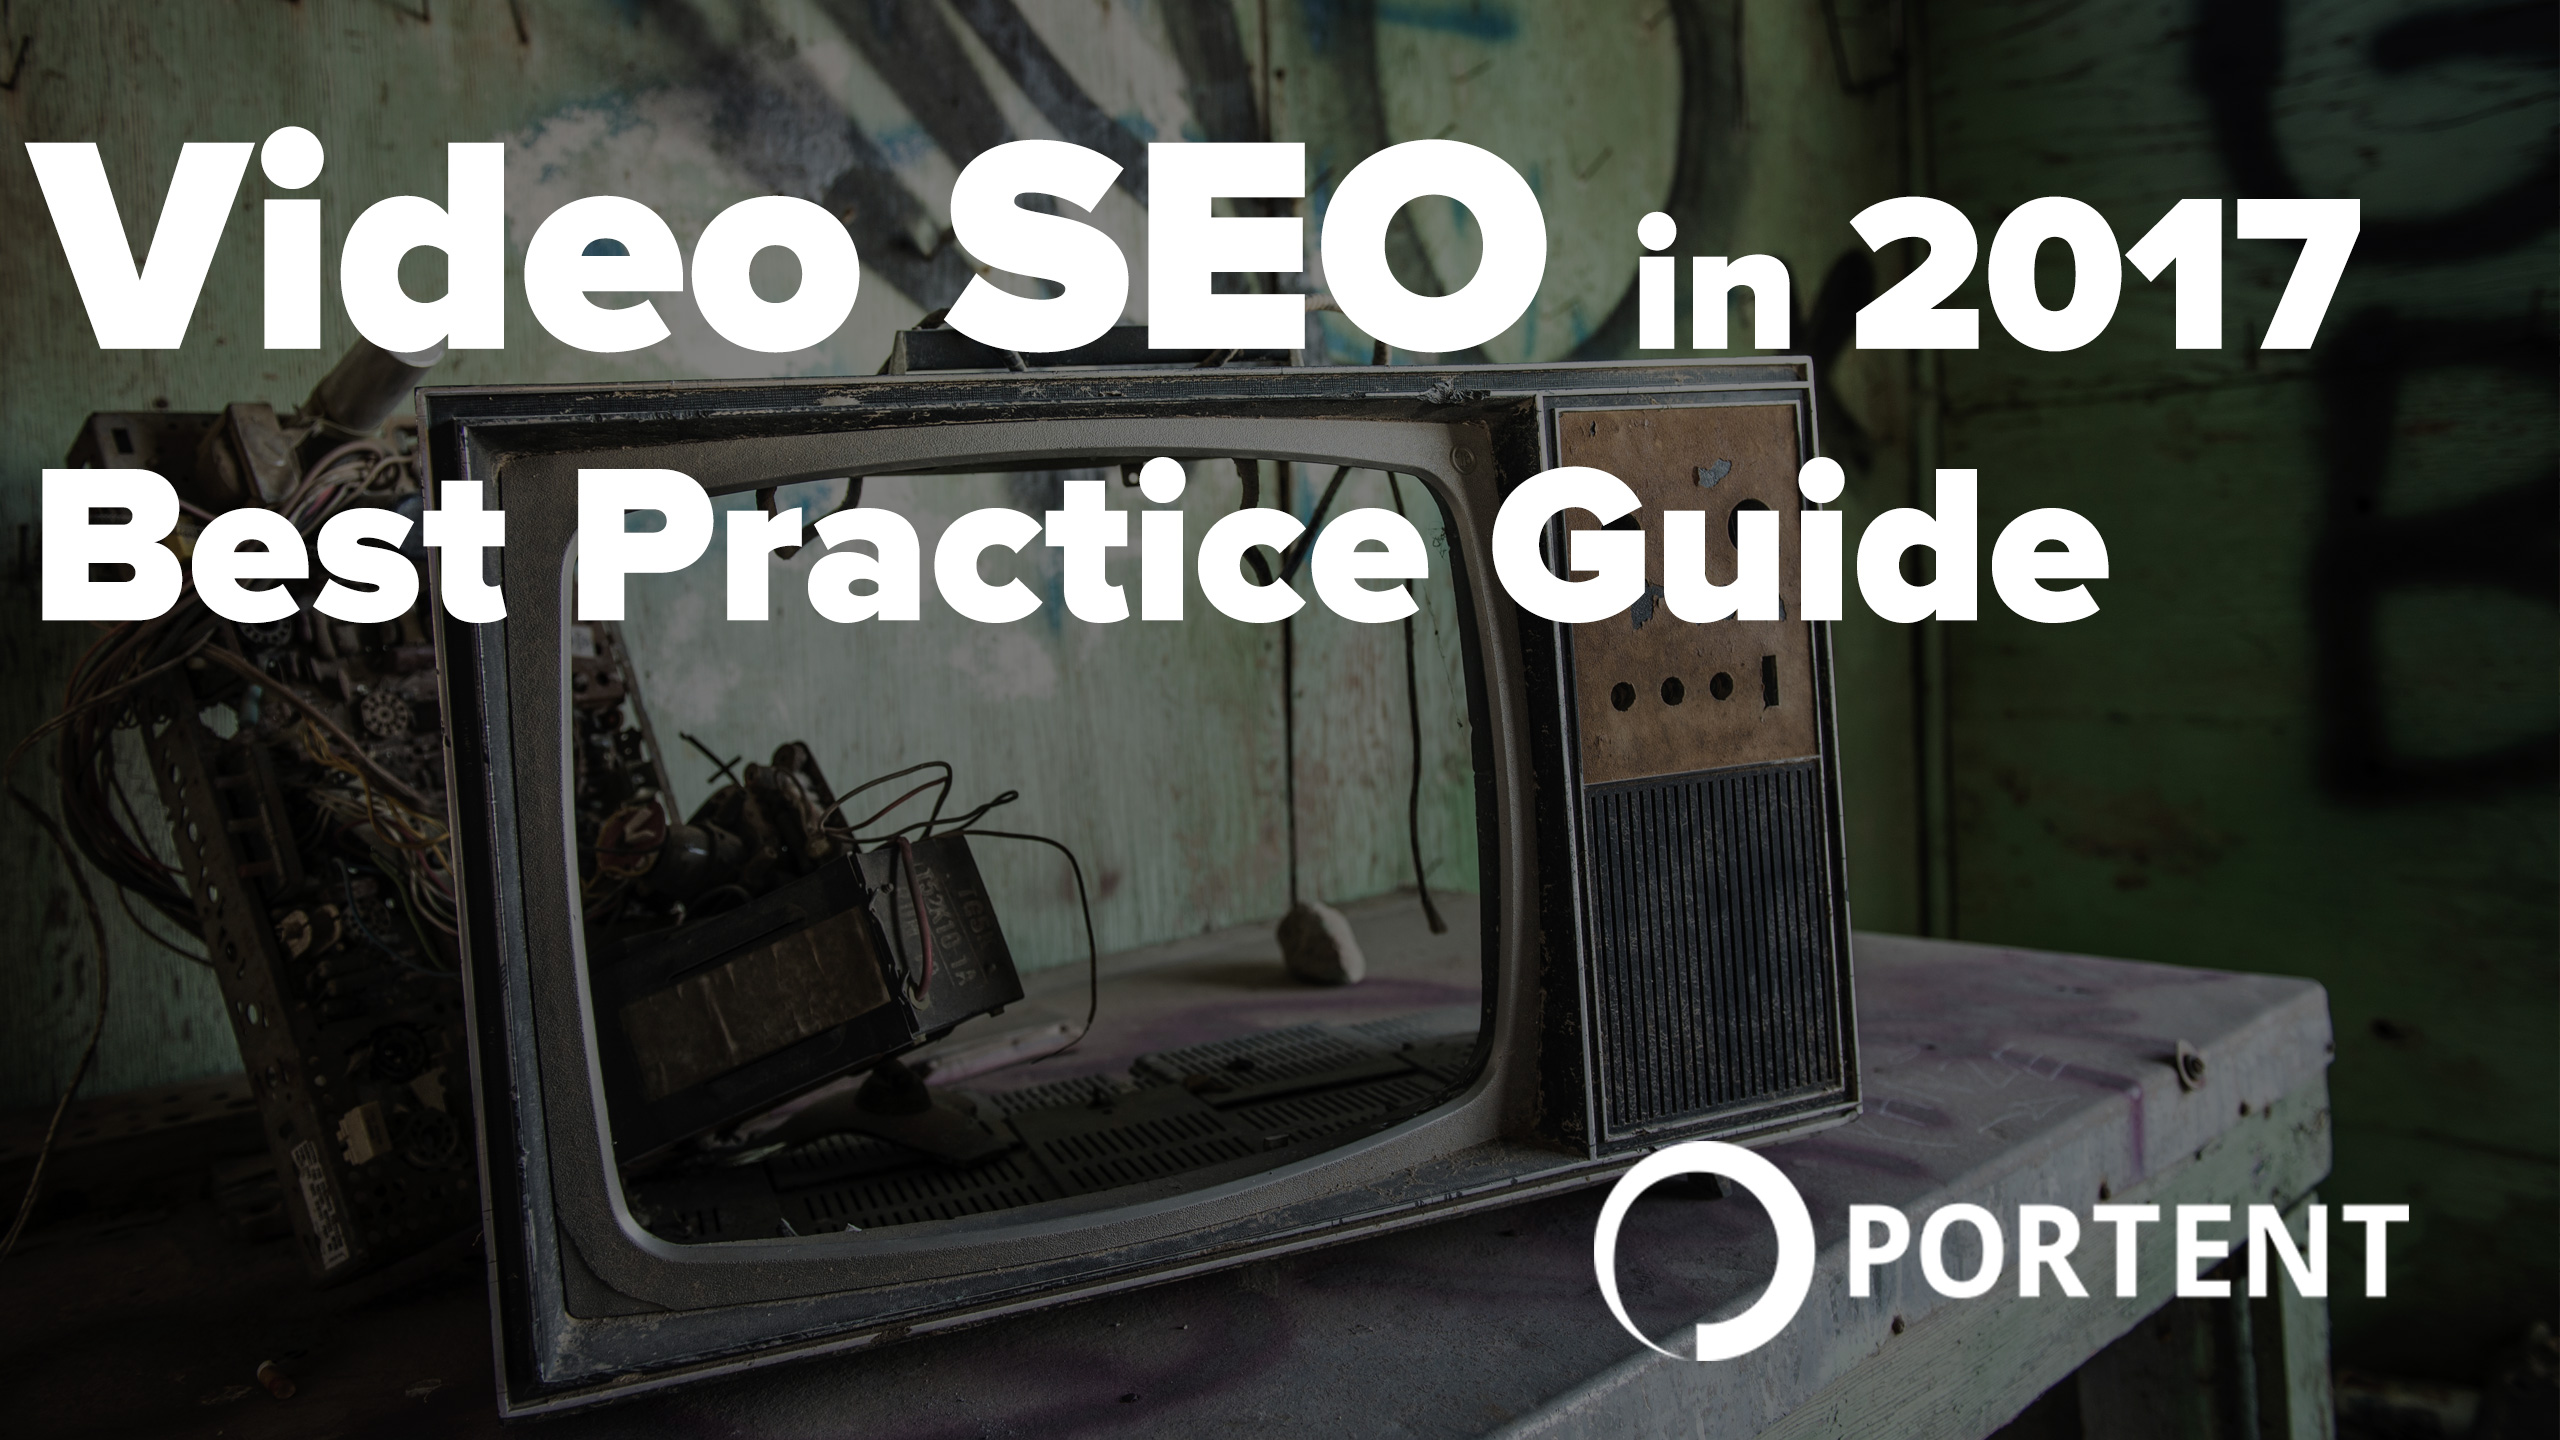 Are video and SEO part of your marketing plans in 2017?